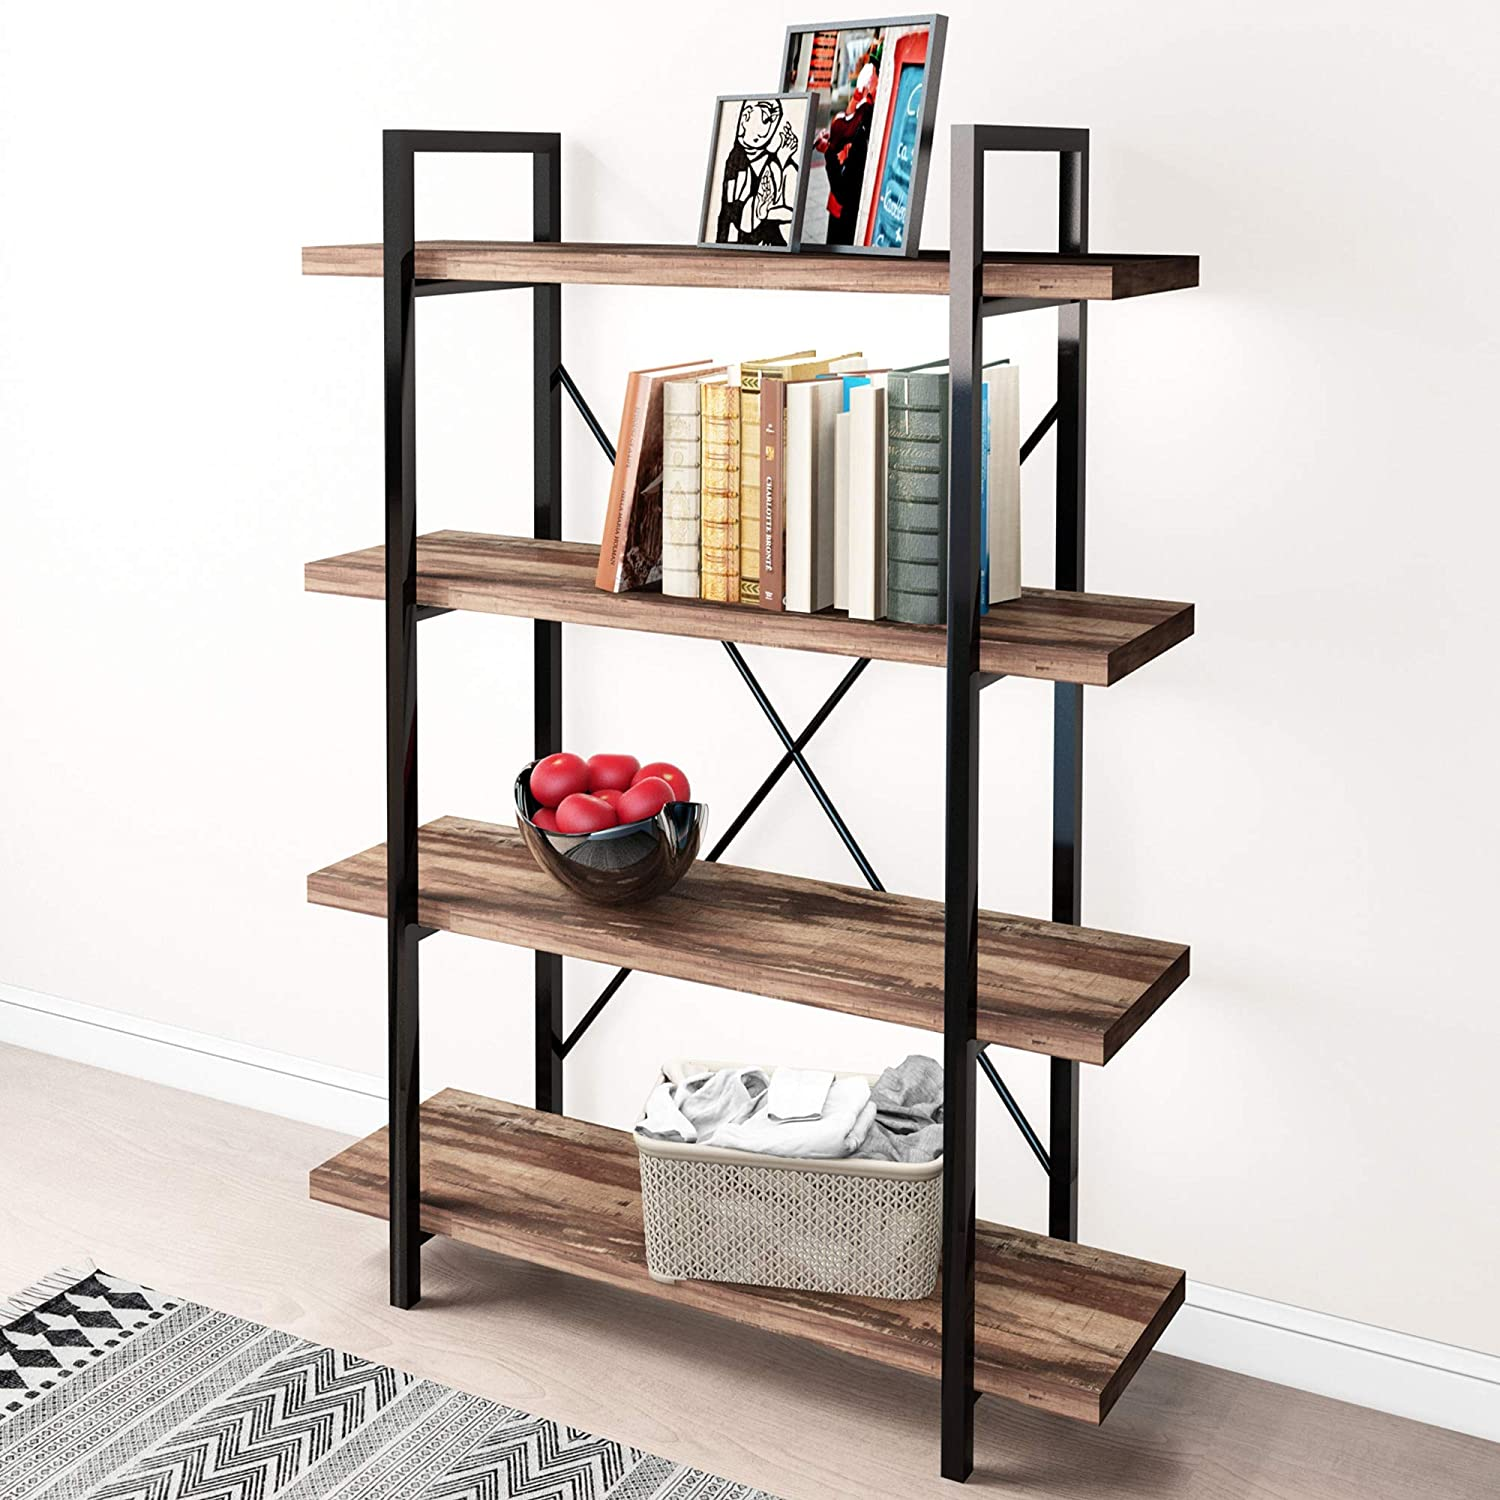 45MinST 4-Tier Vintage Industrial Style Bookcase/Metal and Wood Bookshelf Furniture for Collection,Vintage Brown, 3/4/5 Tier (4-Tier)